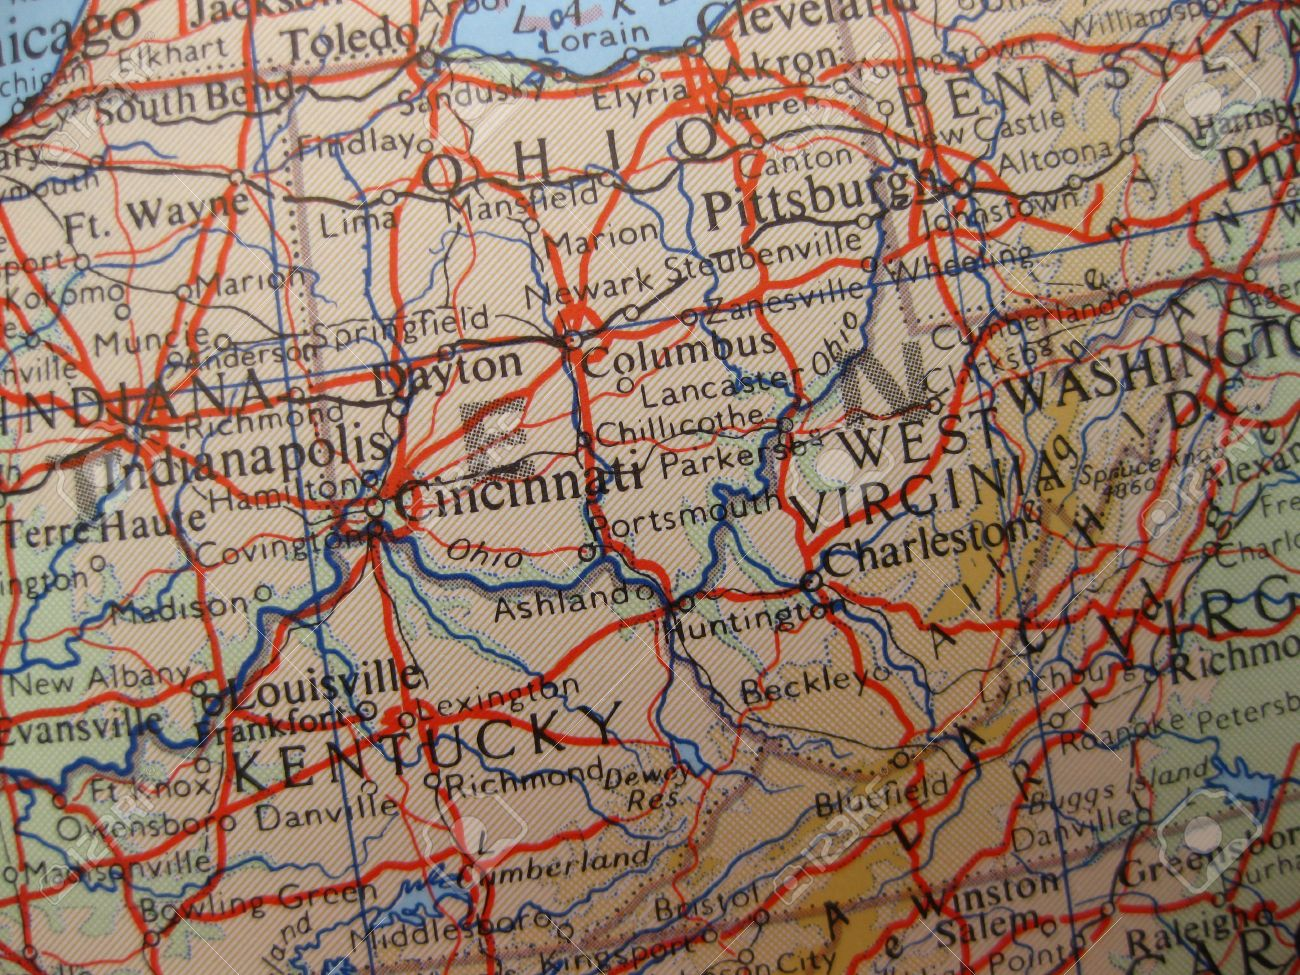 Map Of Ohio West Virginia And Pennsylvania.Map Of Kentucky Ohio And West Virginia Stock Photo Picture And